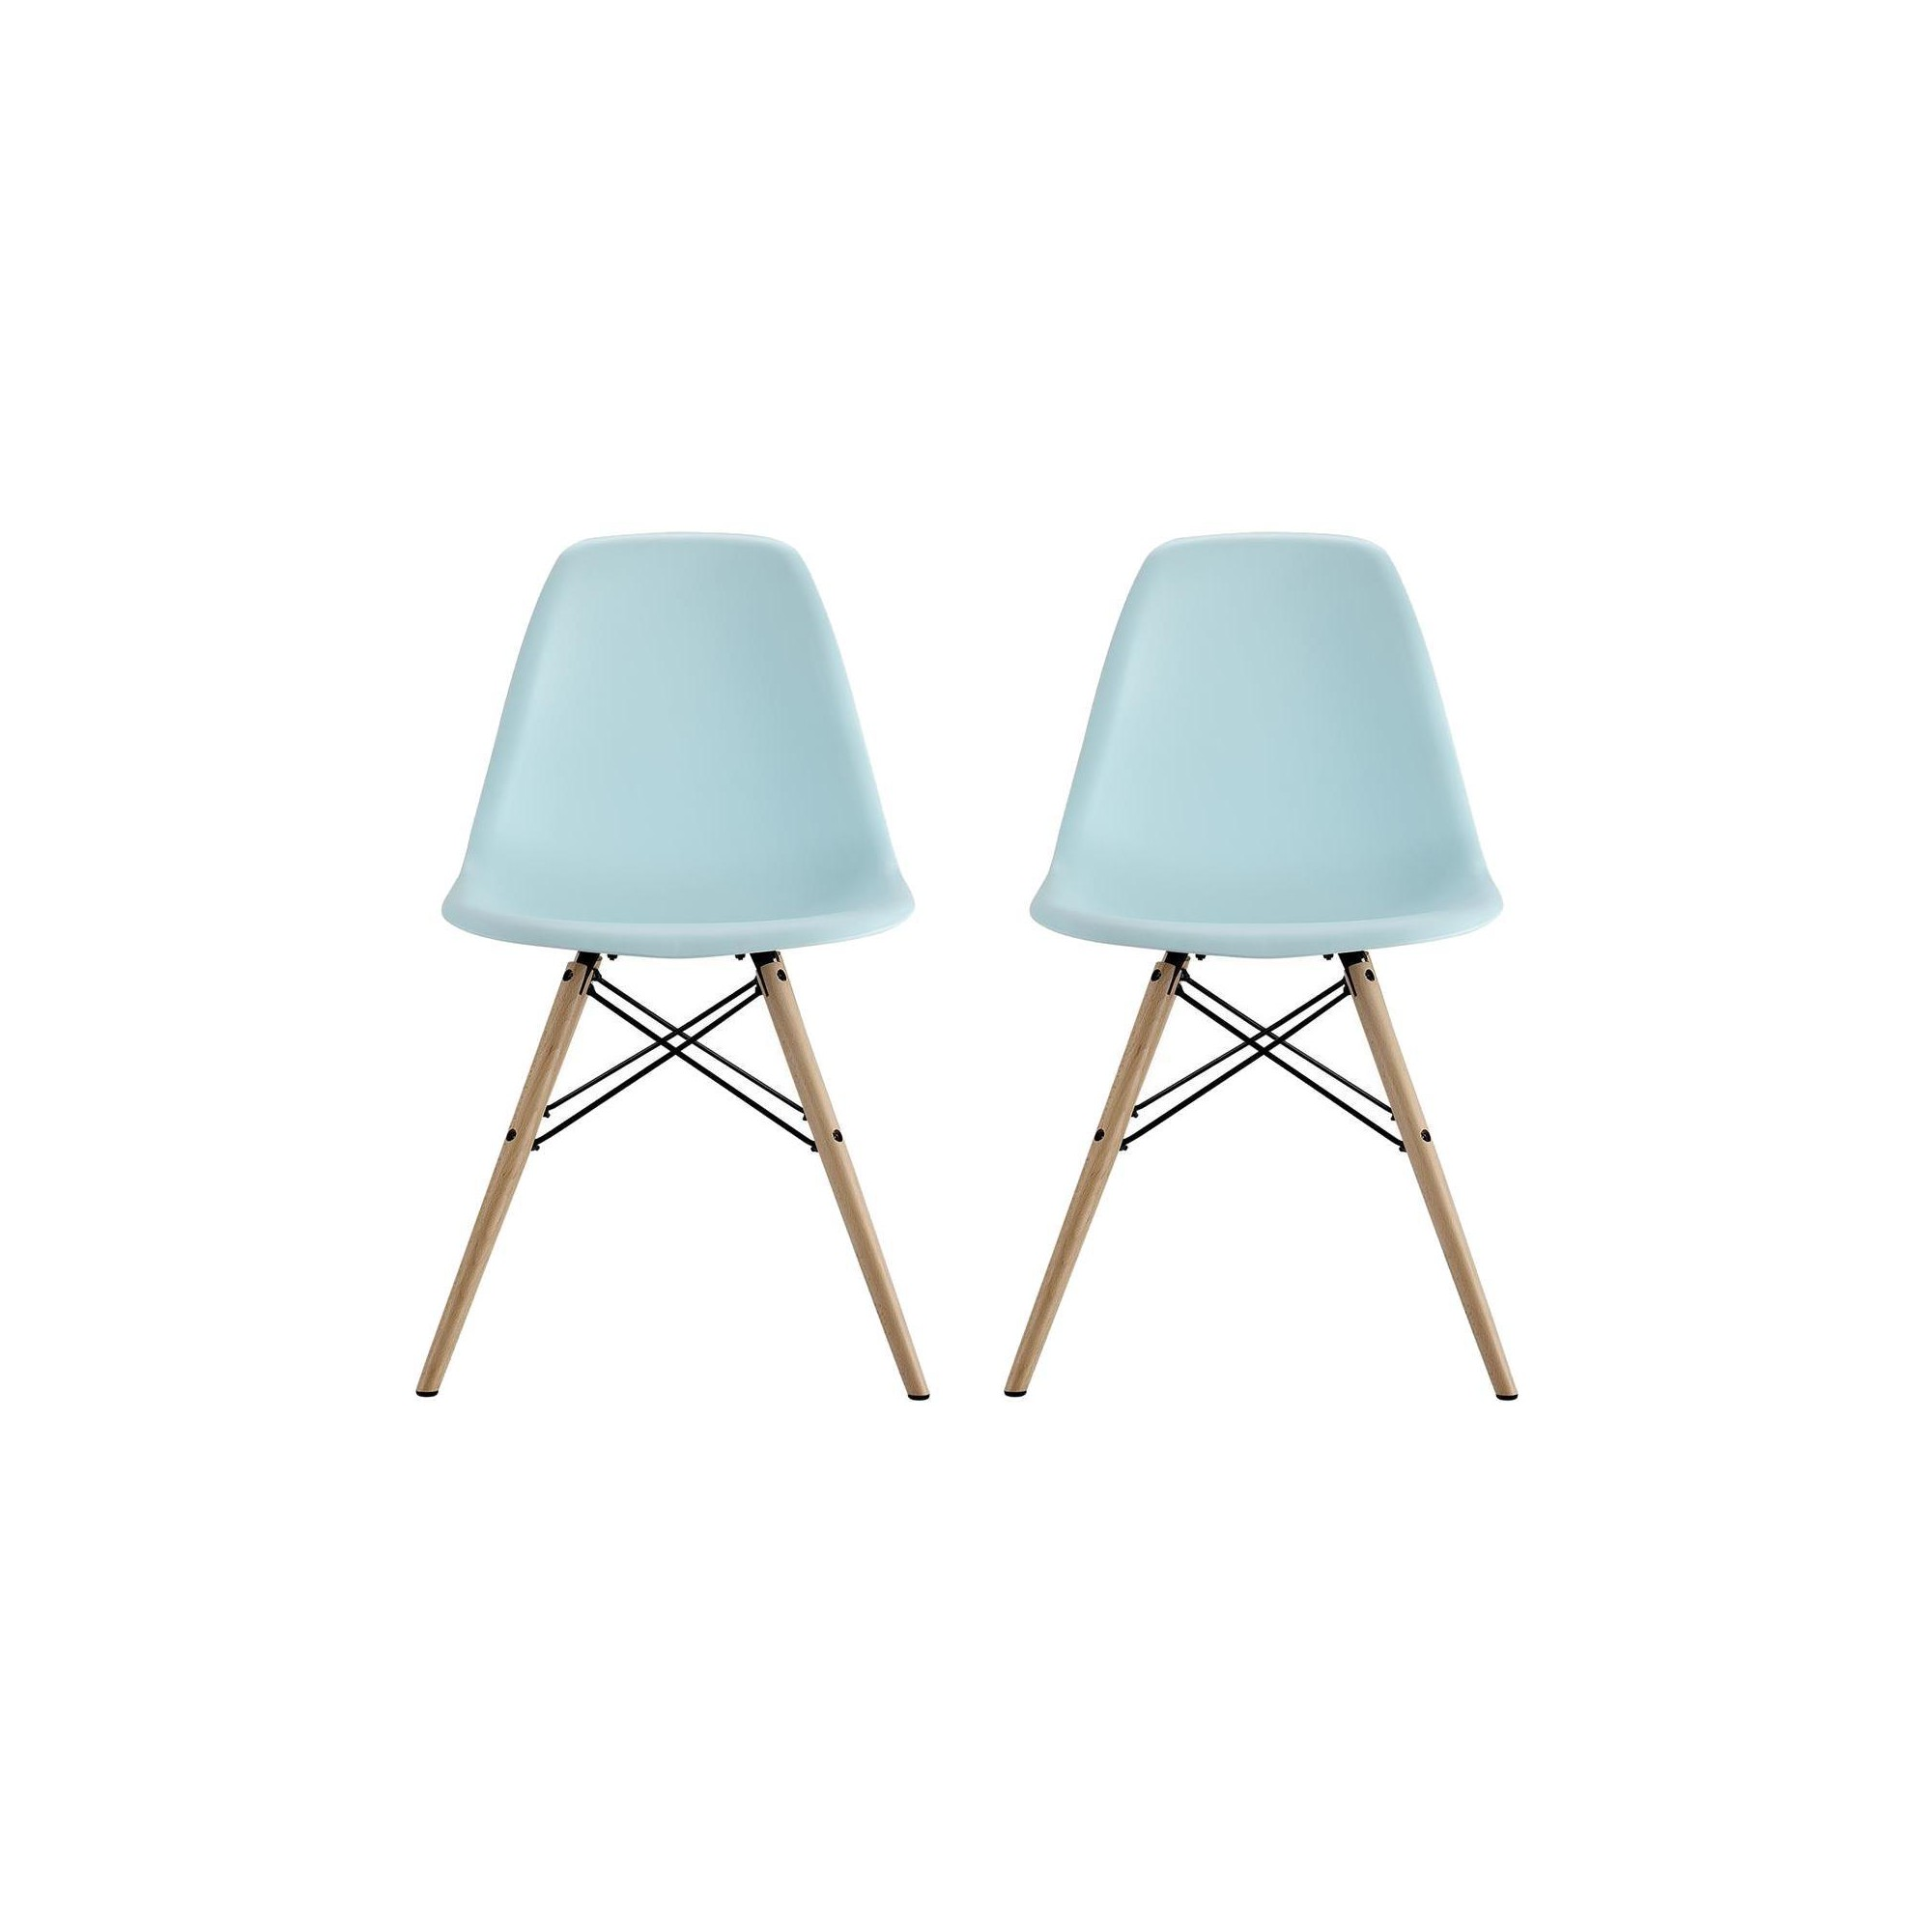 Set Of 2 Bellini Mid Century Modern Molded Chair With Wood Leg